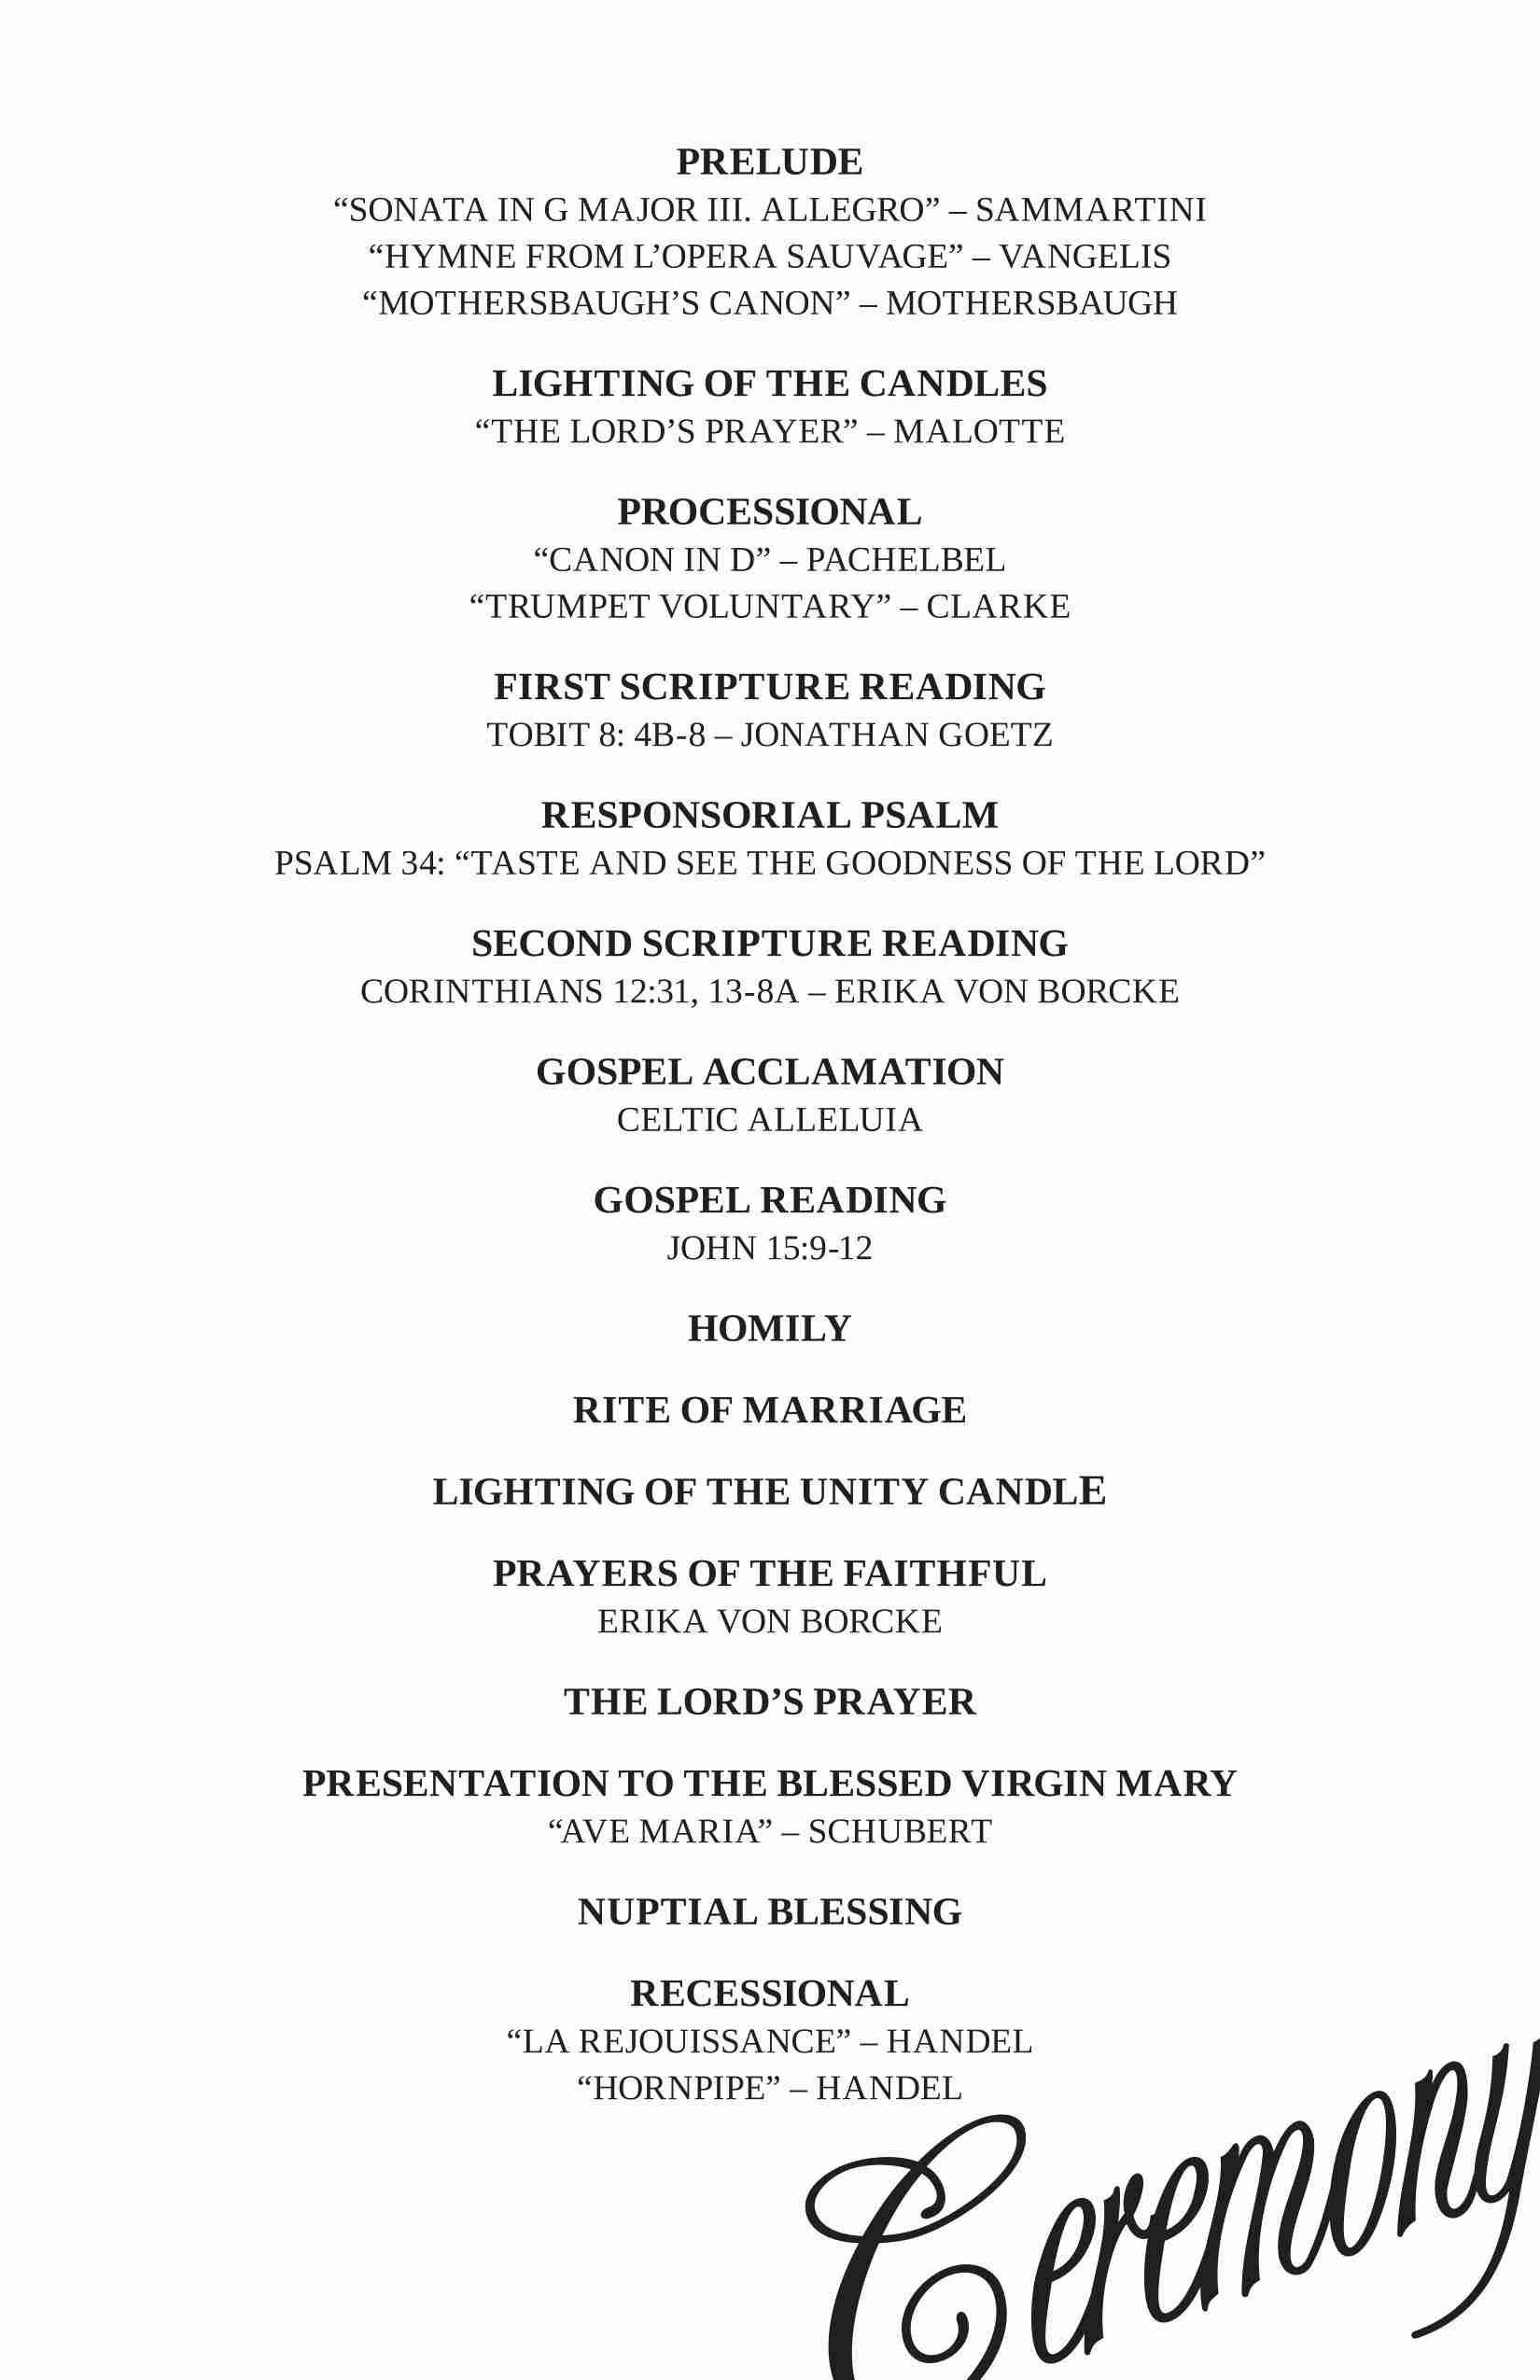 003 Stunning Wedding Reception Programme Template Highest Quality  Program Microsoft Word Free Downloadable PdfFull